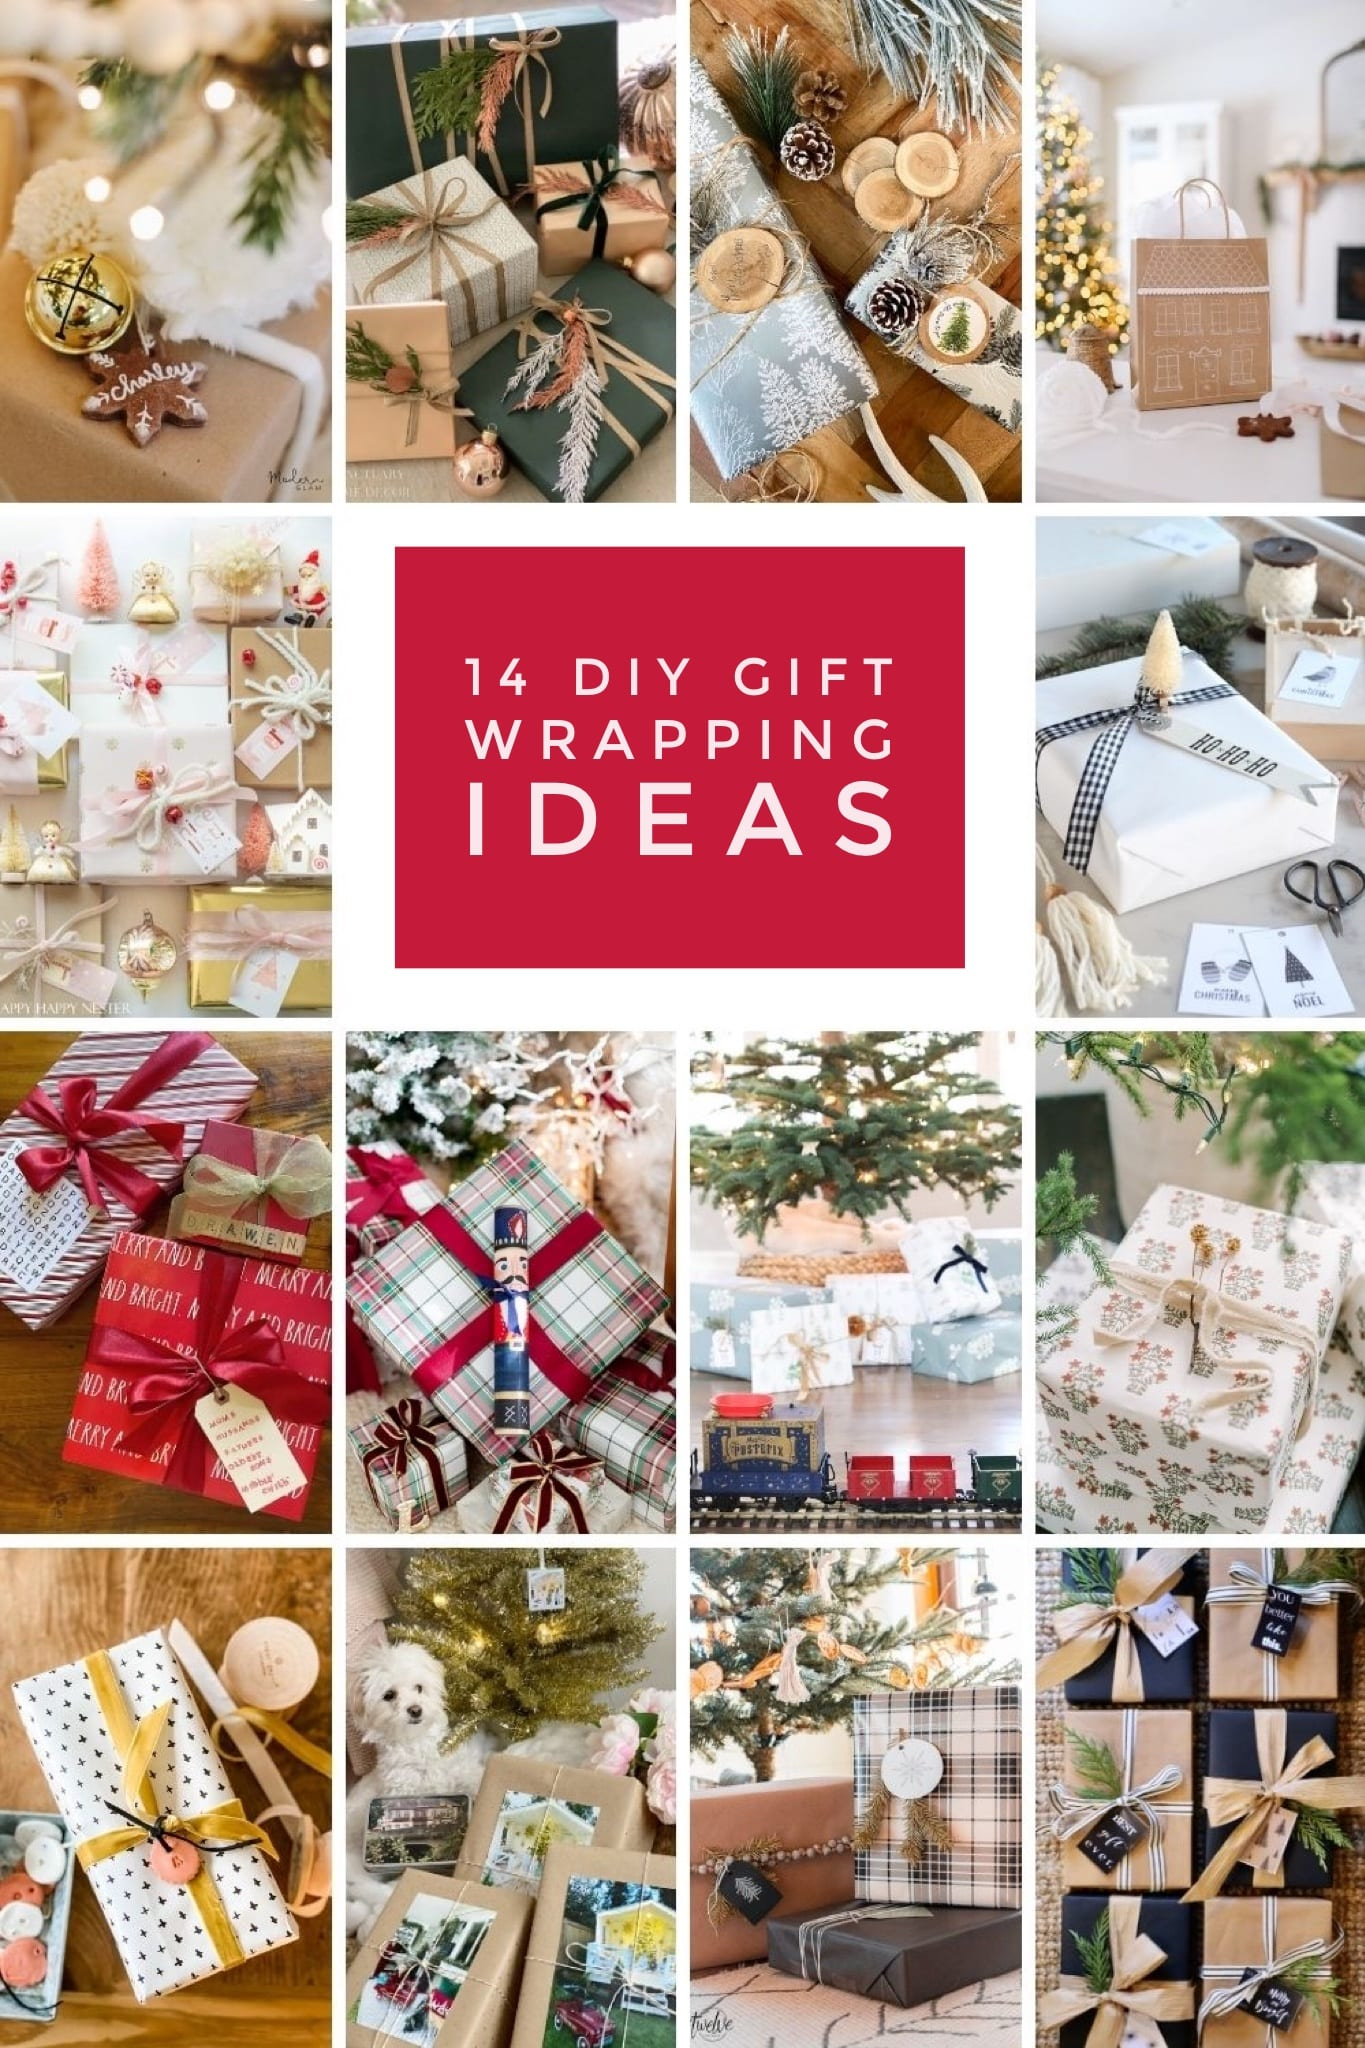 diy gift wrapping ideas for the holidays via @modernglamhome